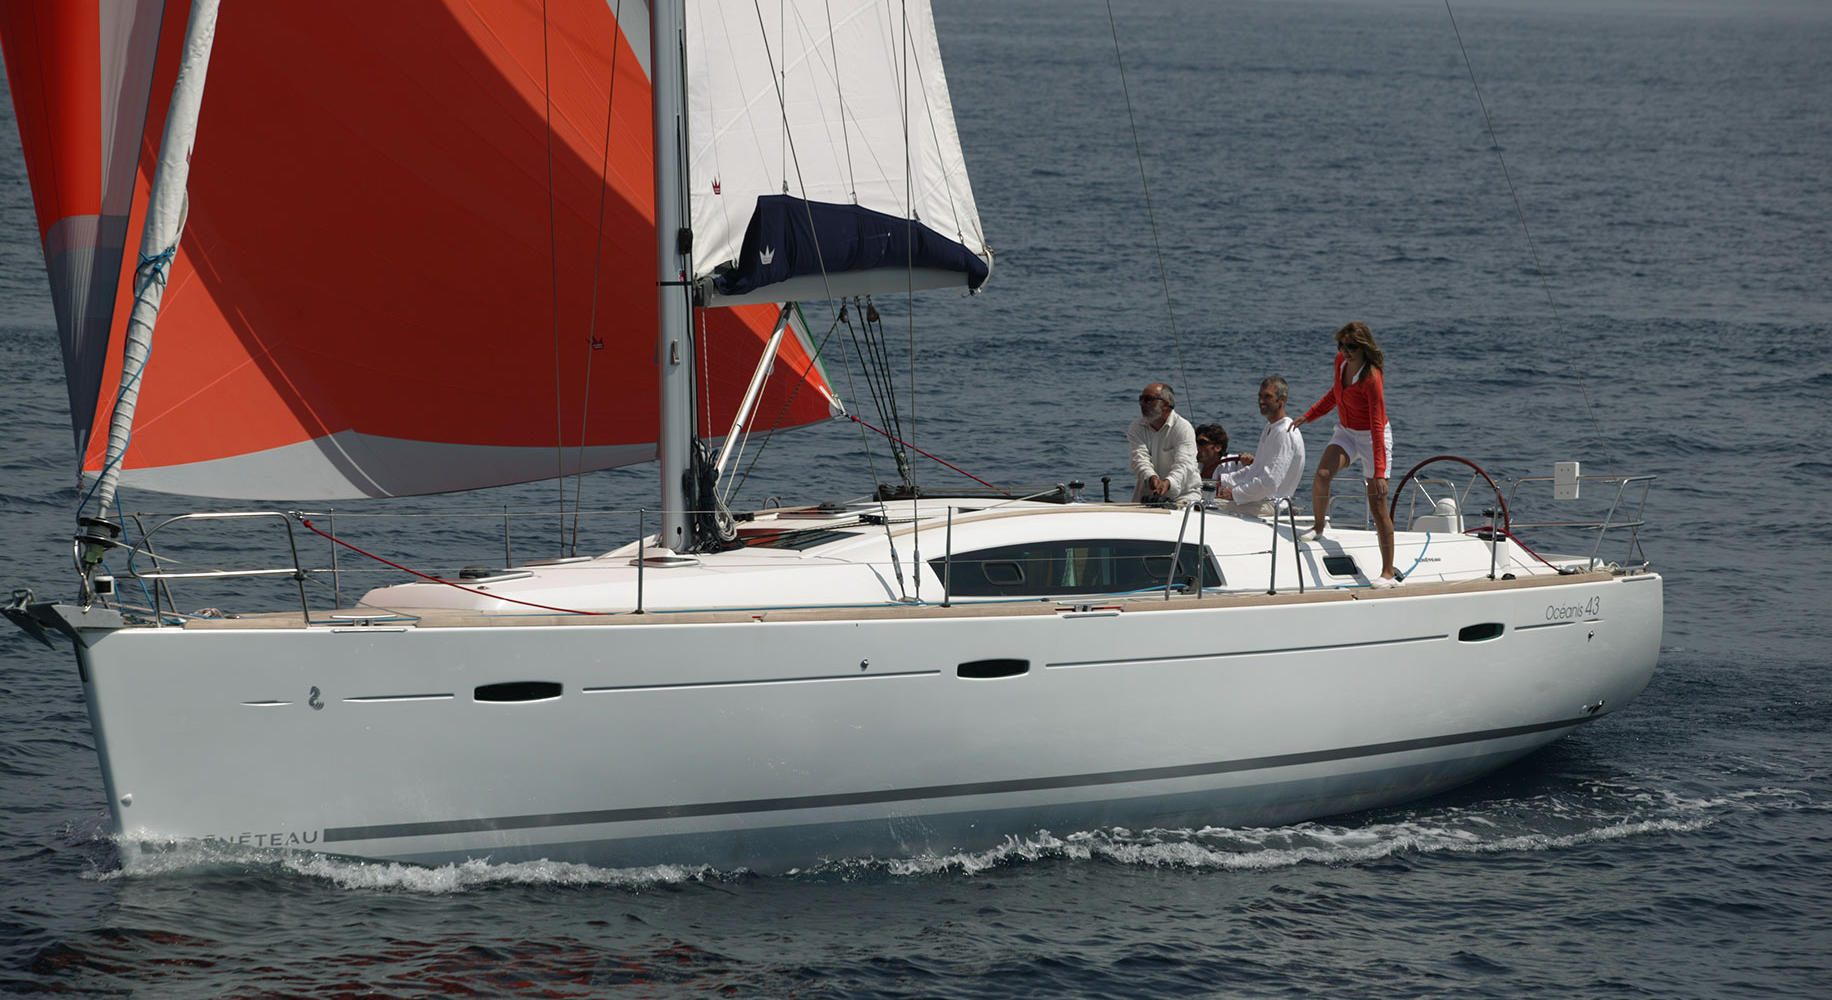 Oceanis 43 Economy - Sailing Yacht for Charter in Greece